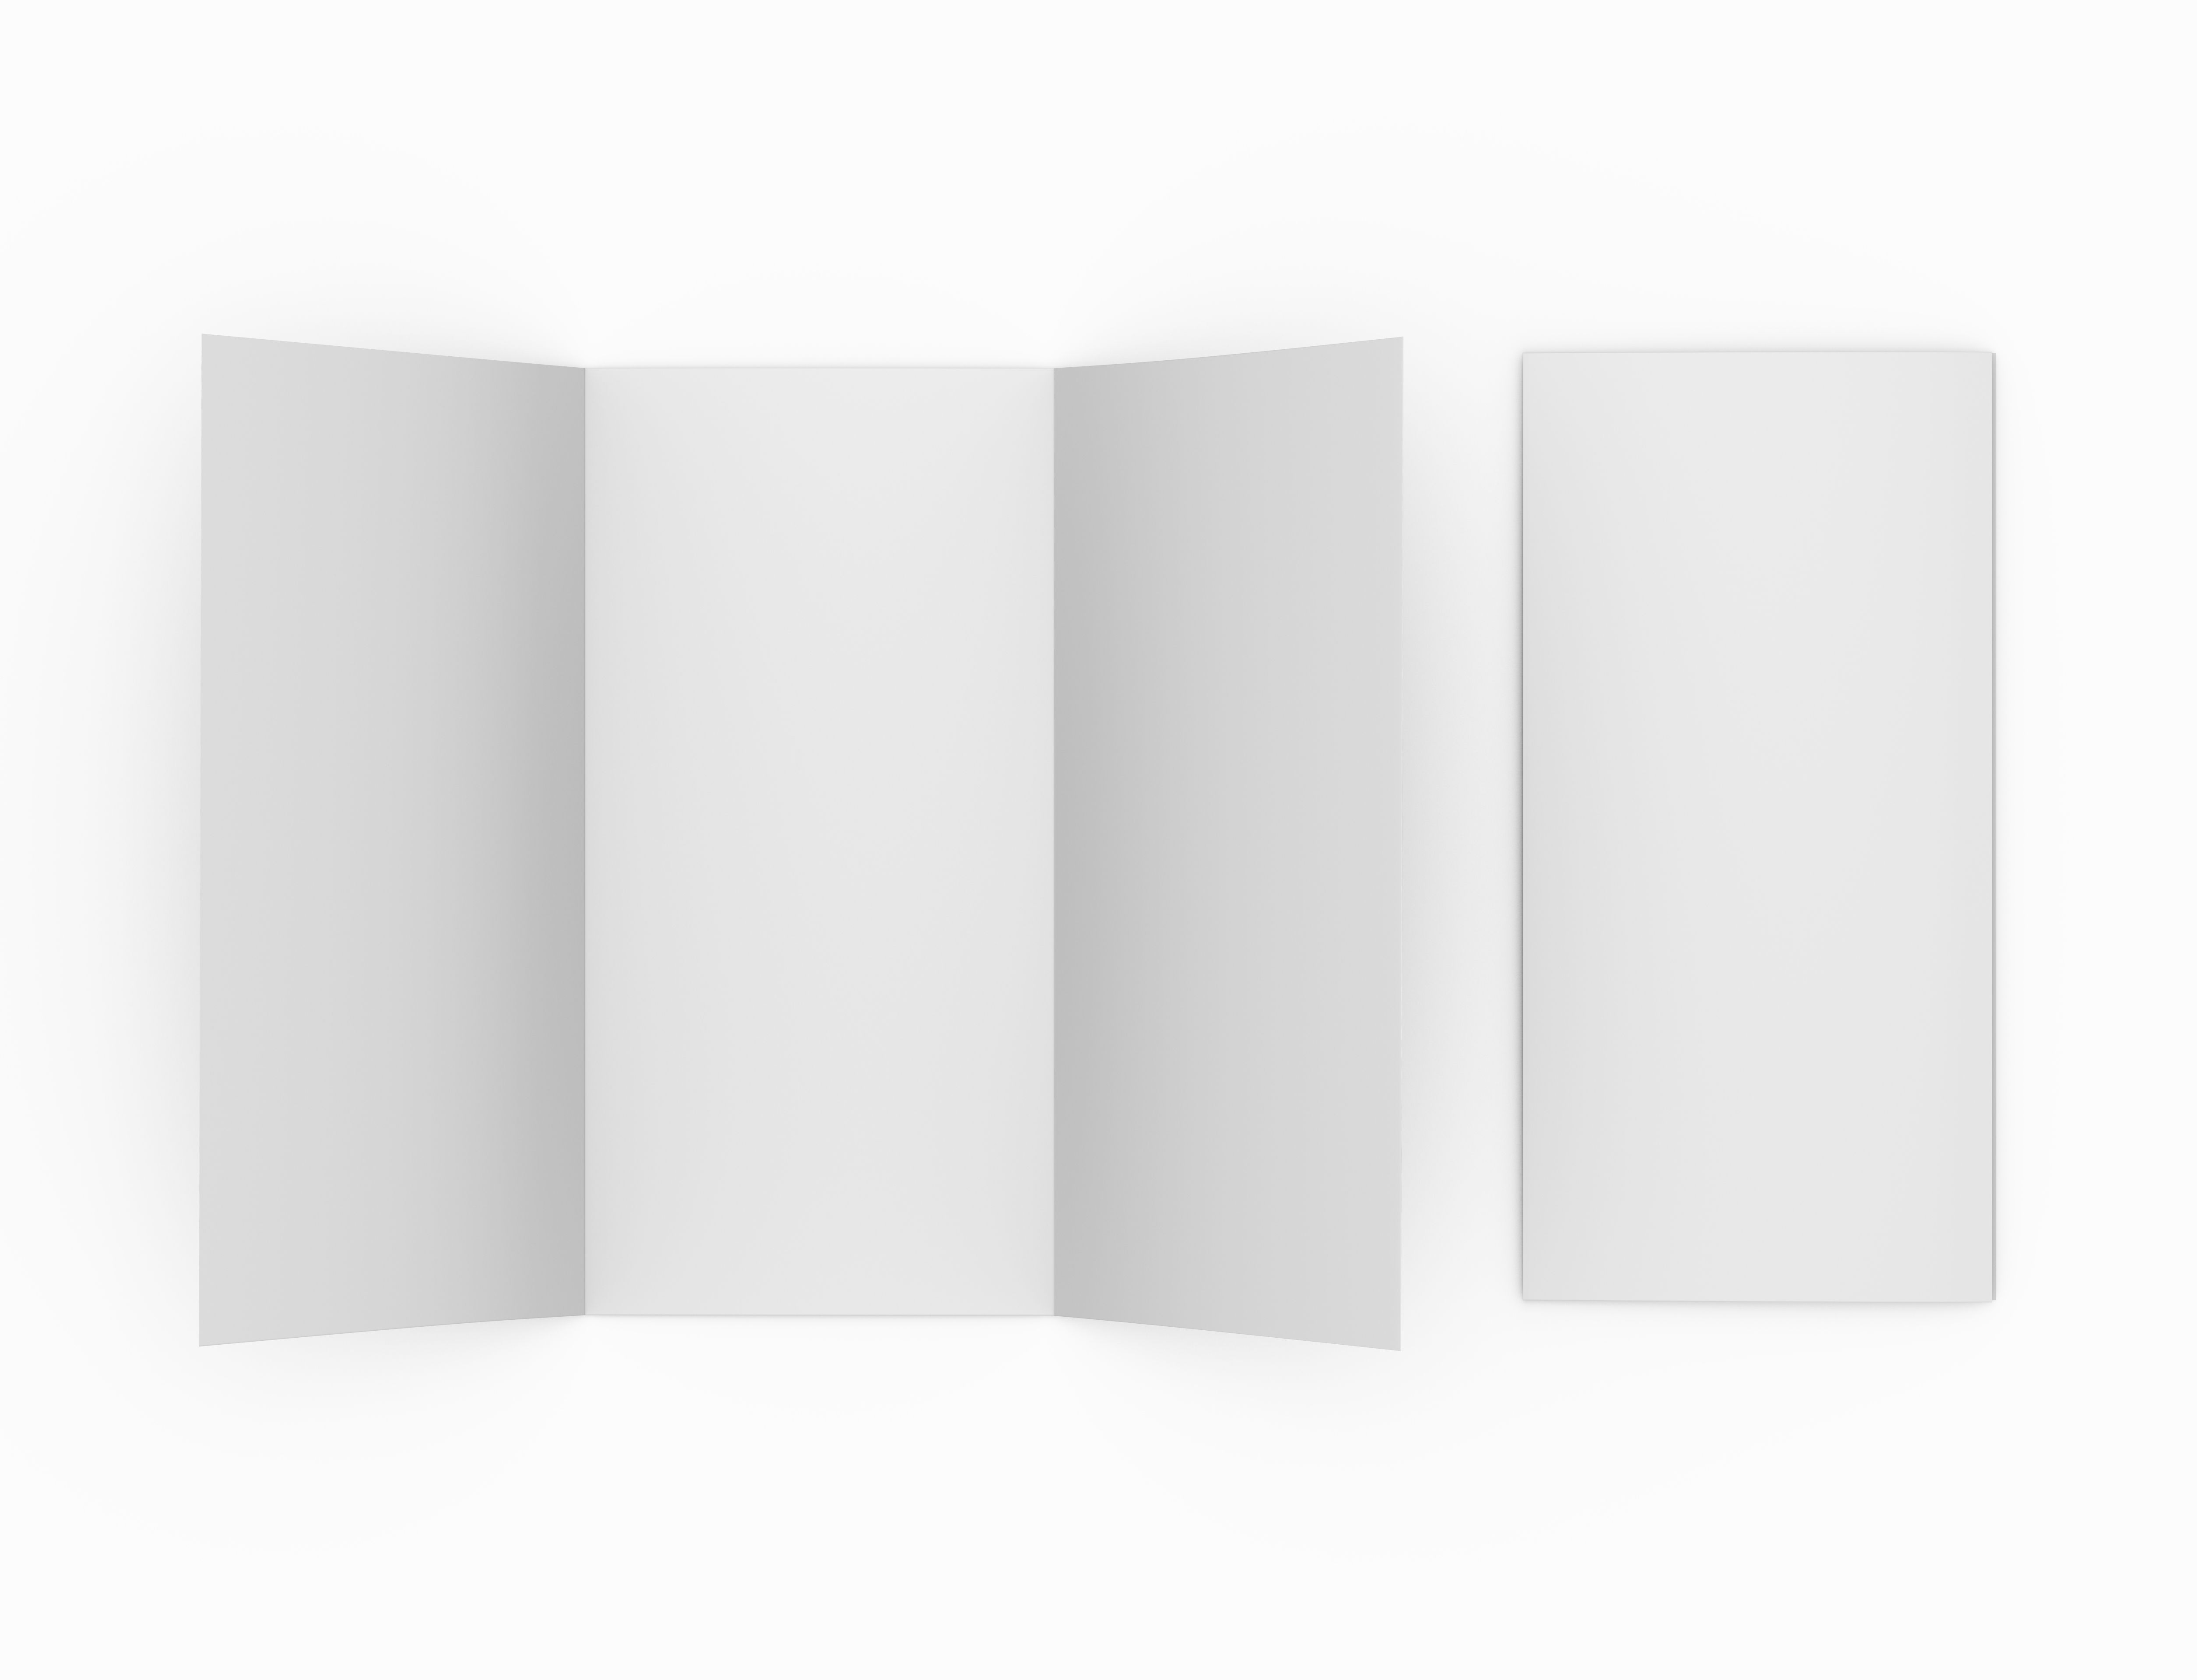 DL Tri Fold and Cover – Free Blank Tri Fold Brochure Templates